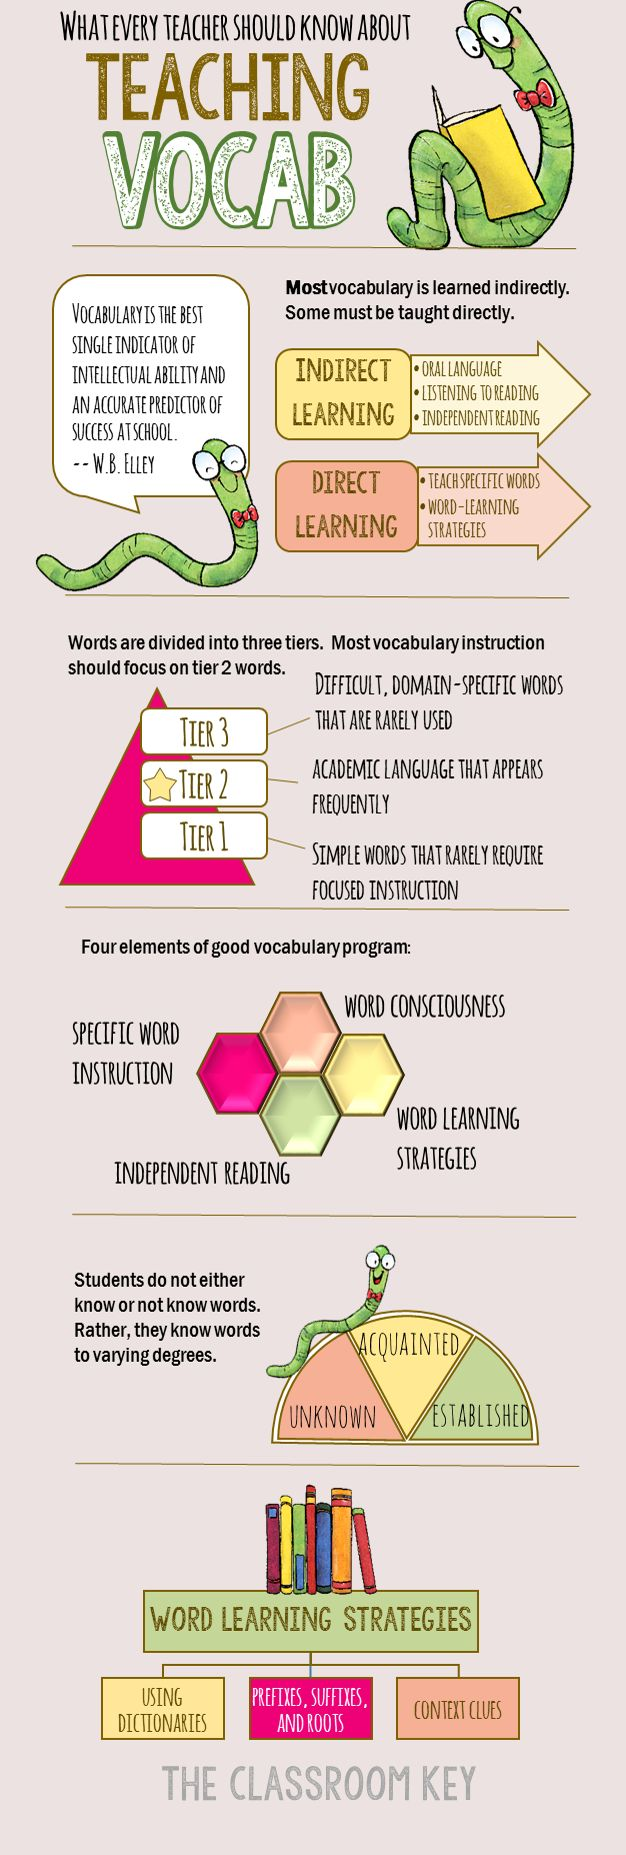 What Every Teacher Should Know About Teaching Vocabulary | Teacher Ideas | Pinterest | Teaching vocabulary, Teaching and Vocabulary